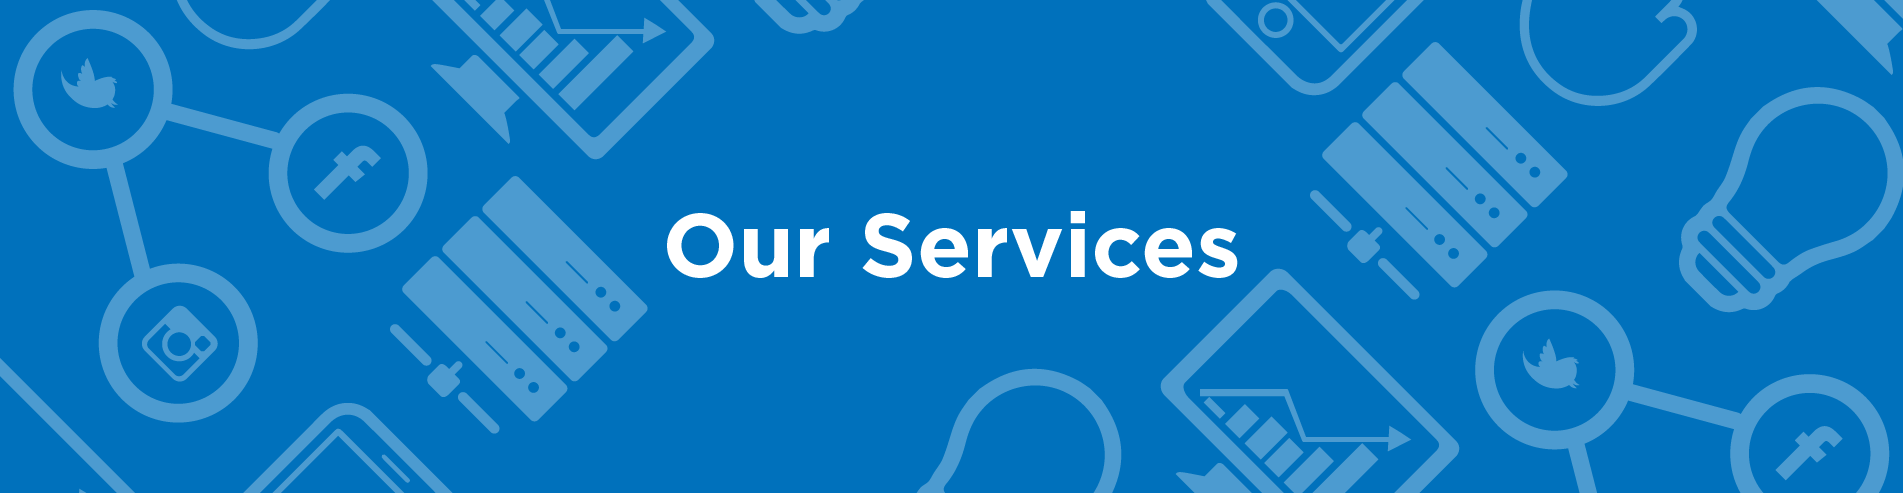 services service offer introduction links quick